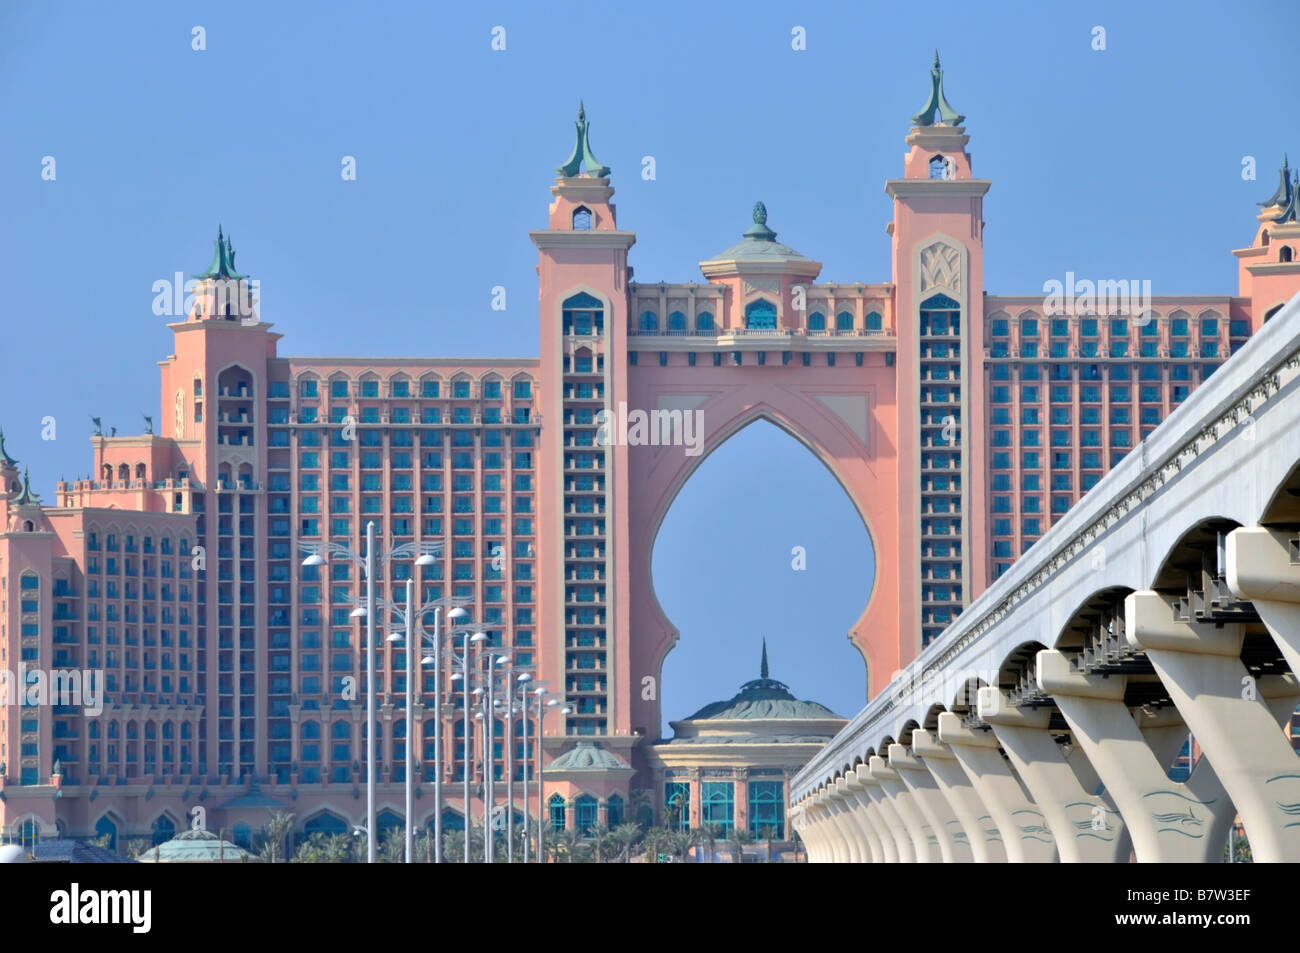 Dubai Atlantis Palm Hotel Resort Complex And Monorail Overhead Stock